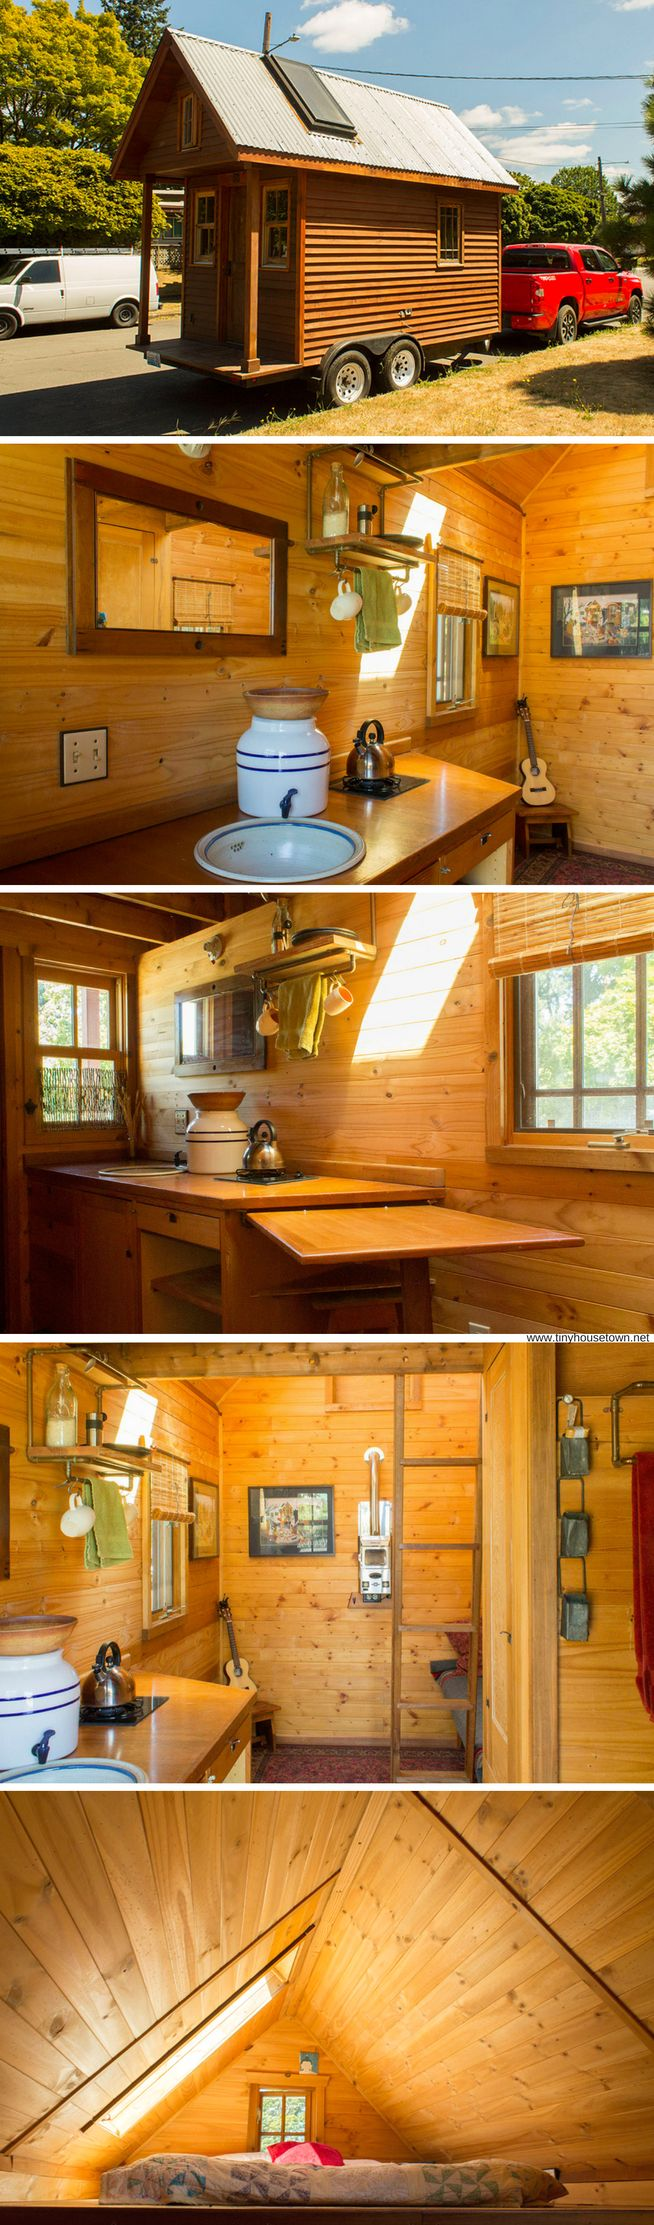 The Kozy Kabin: an 84 sq ft tiny house with no running water and minimal solar power